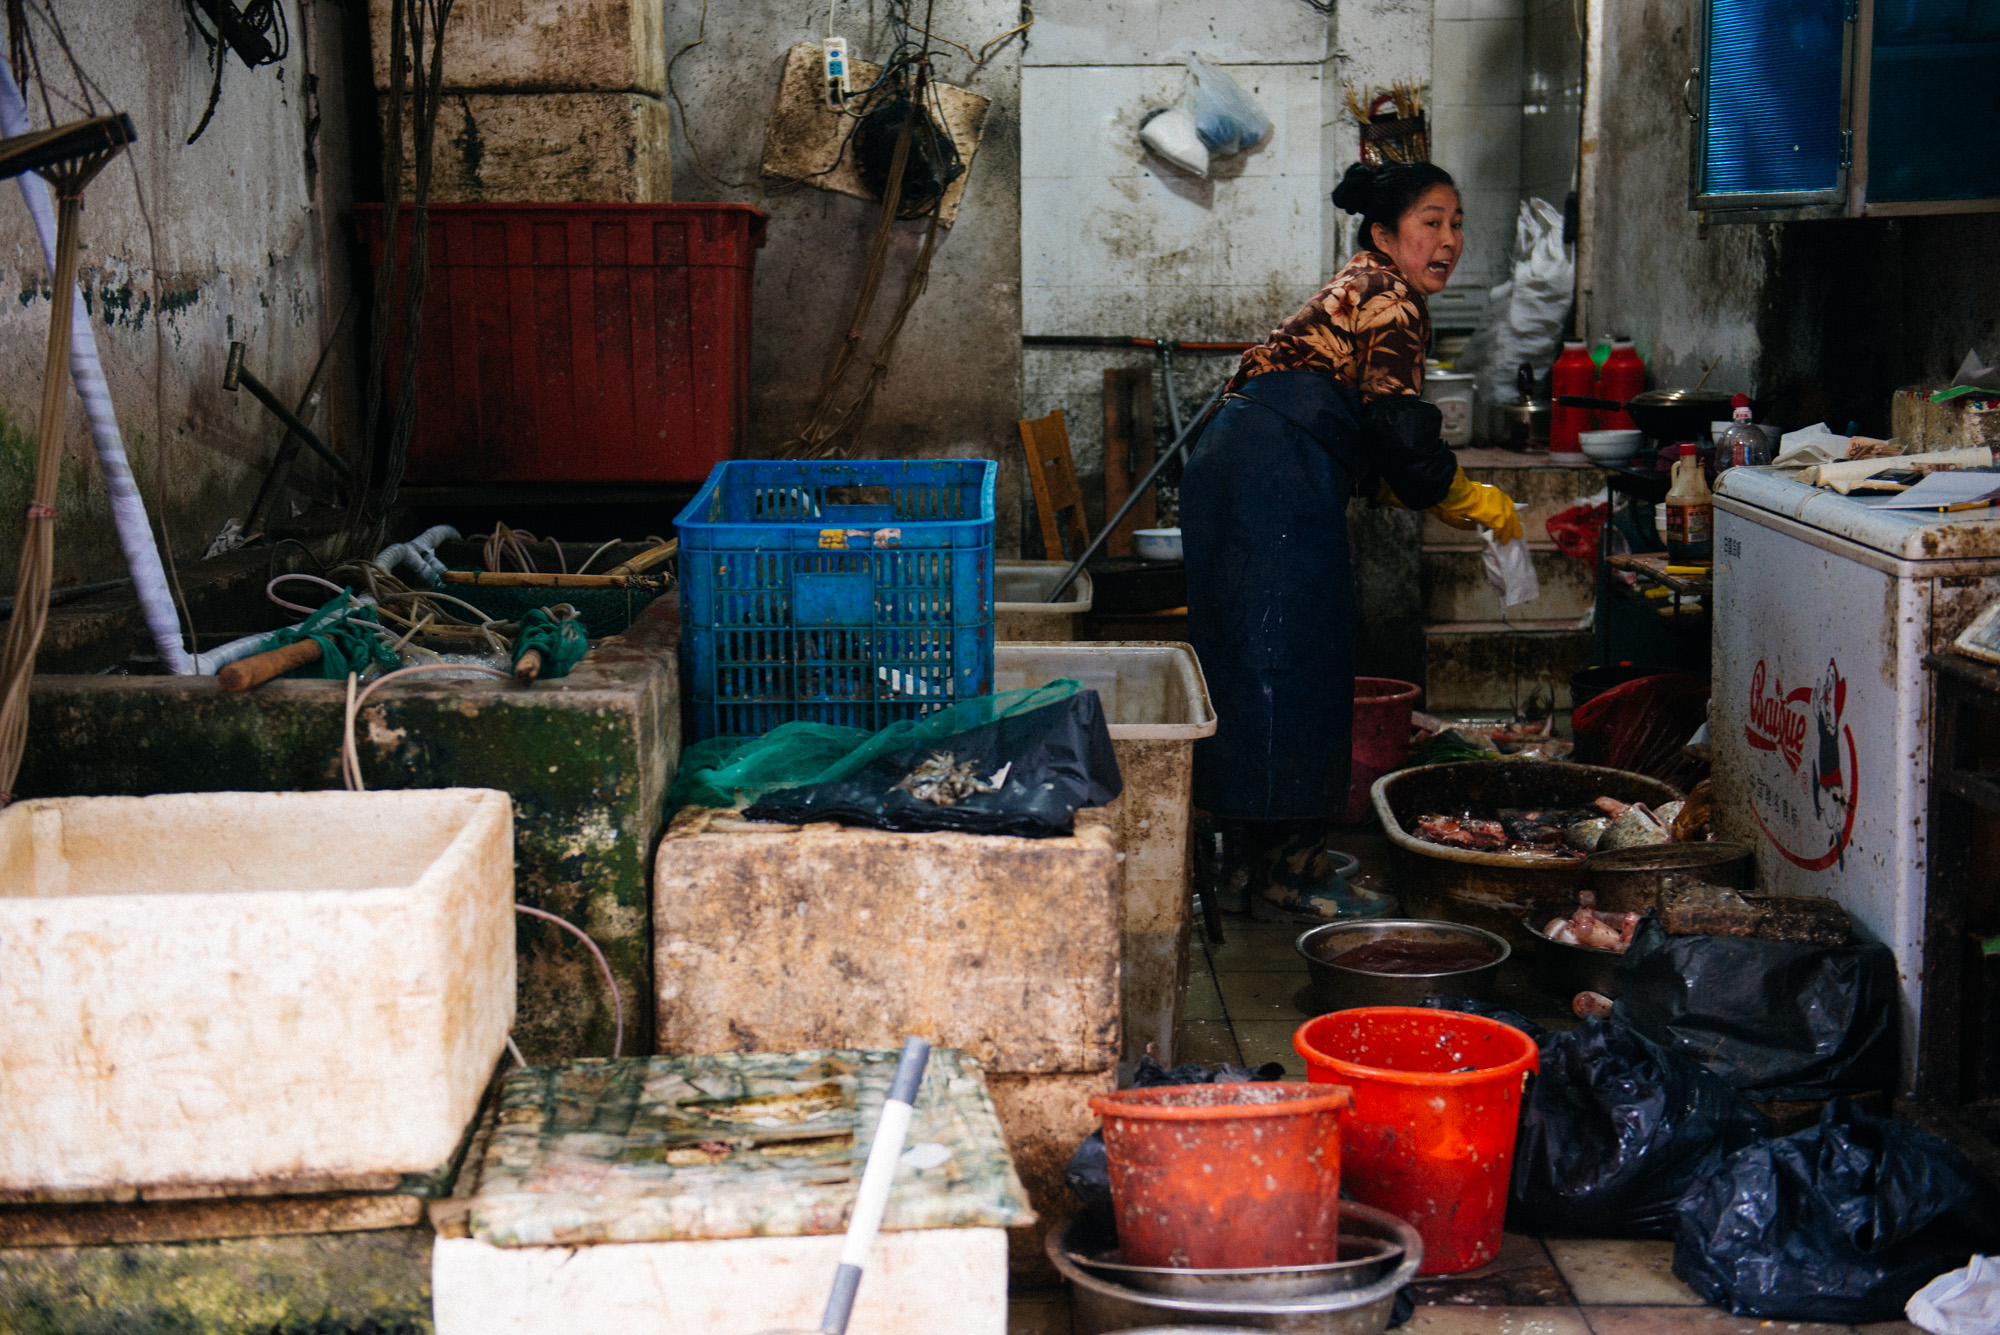 Fish saleswoman argues with customer as she bags his purchase. In front of the shop several tanks with live (and some not so much) animals are for sale.